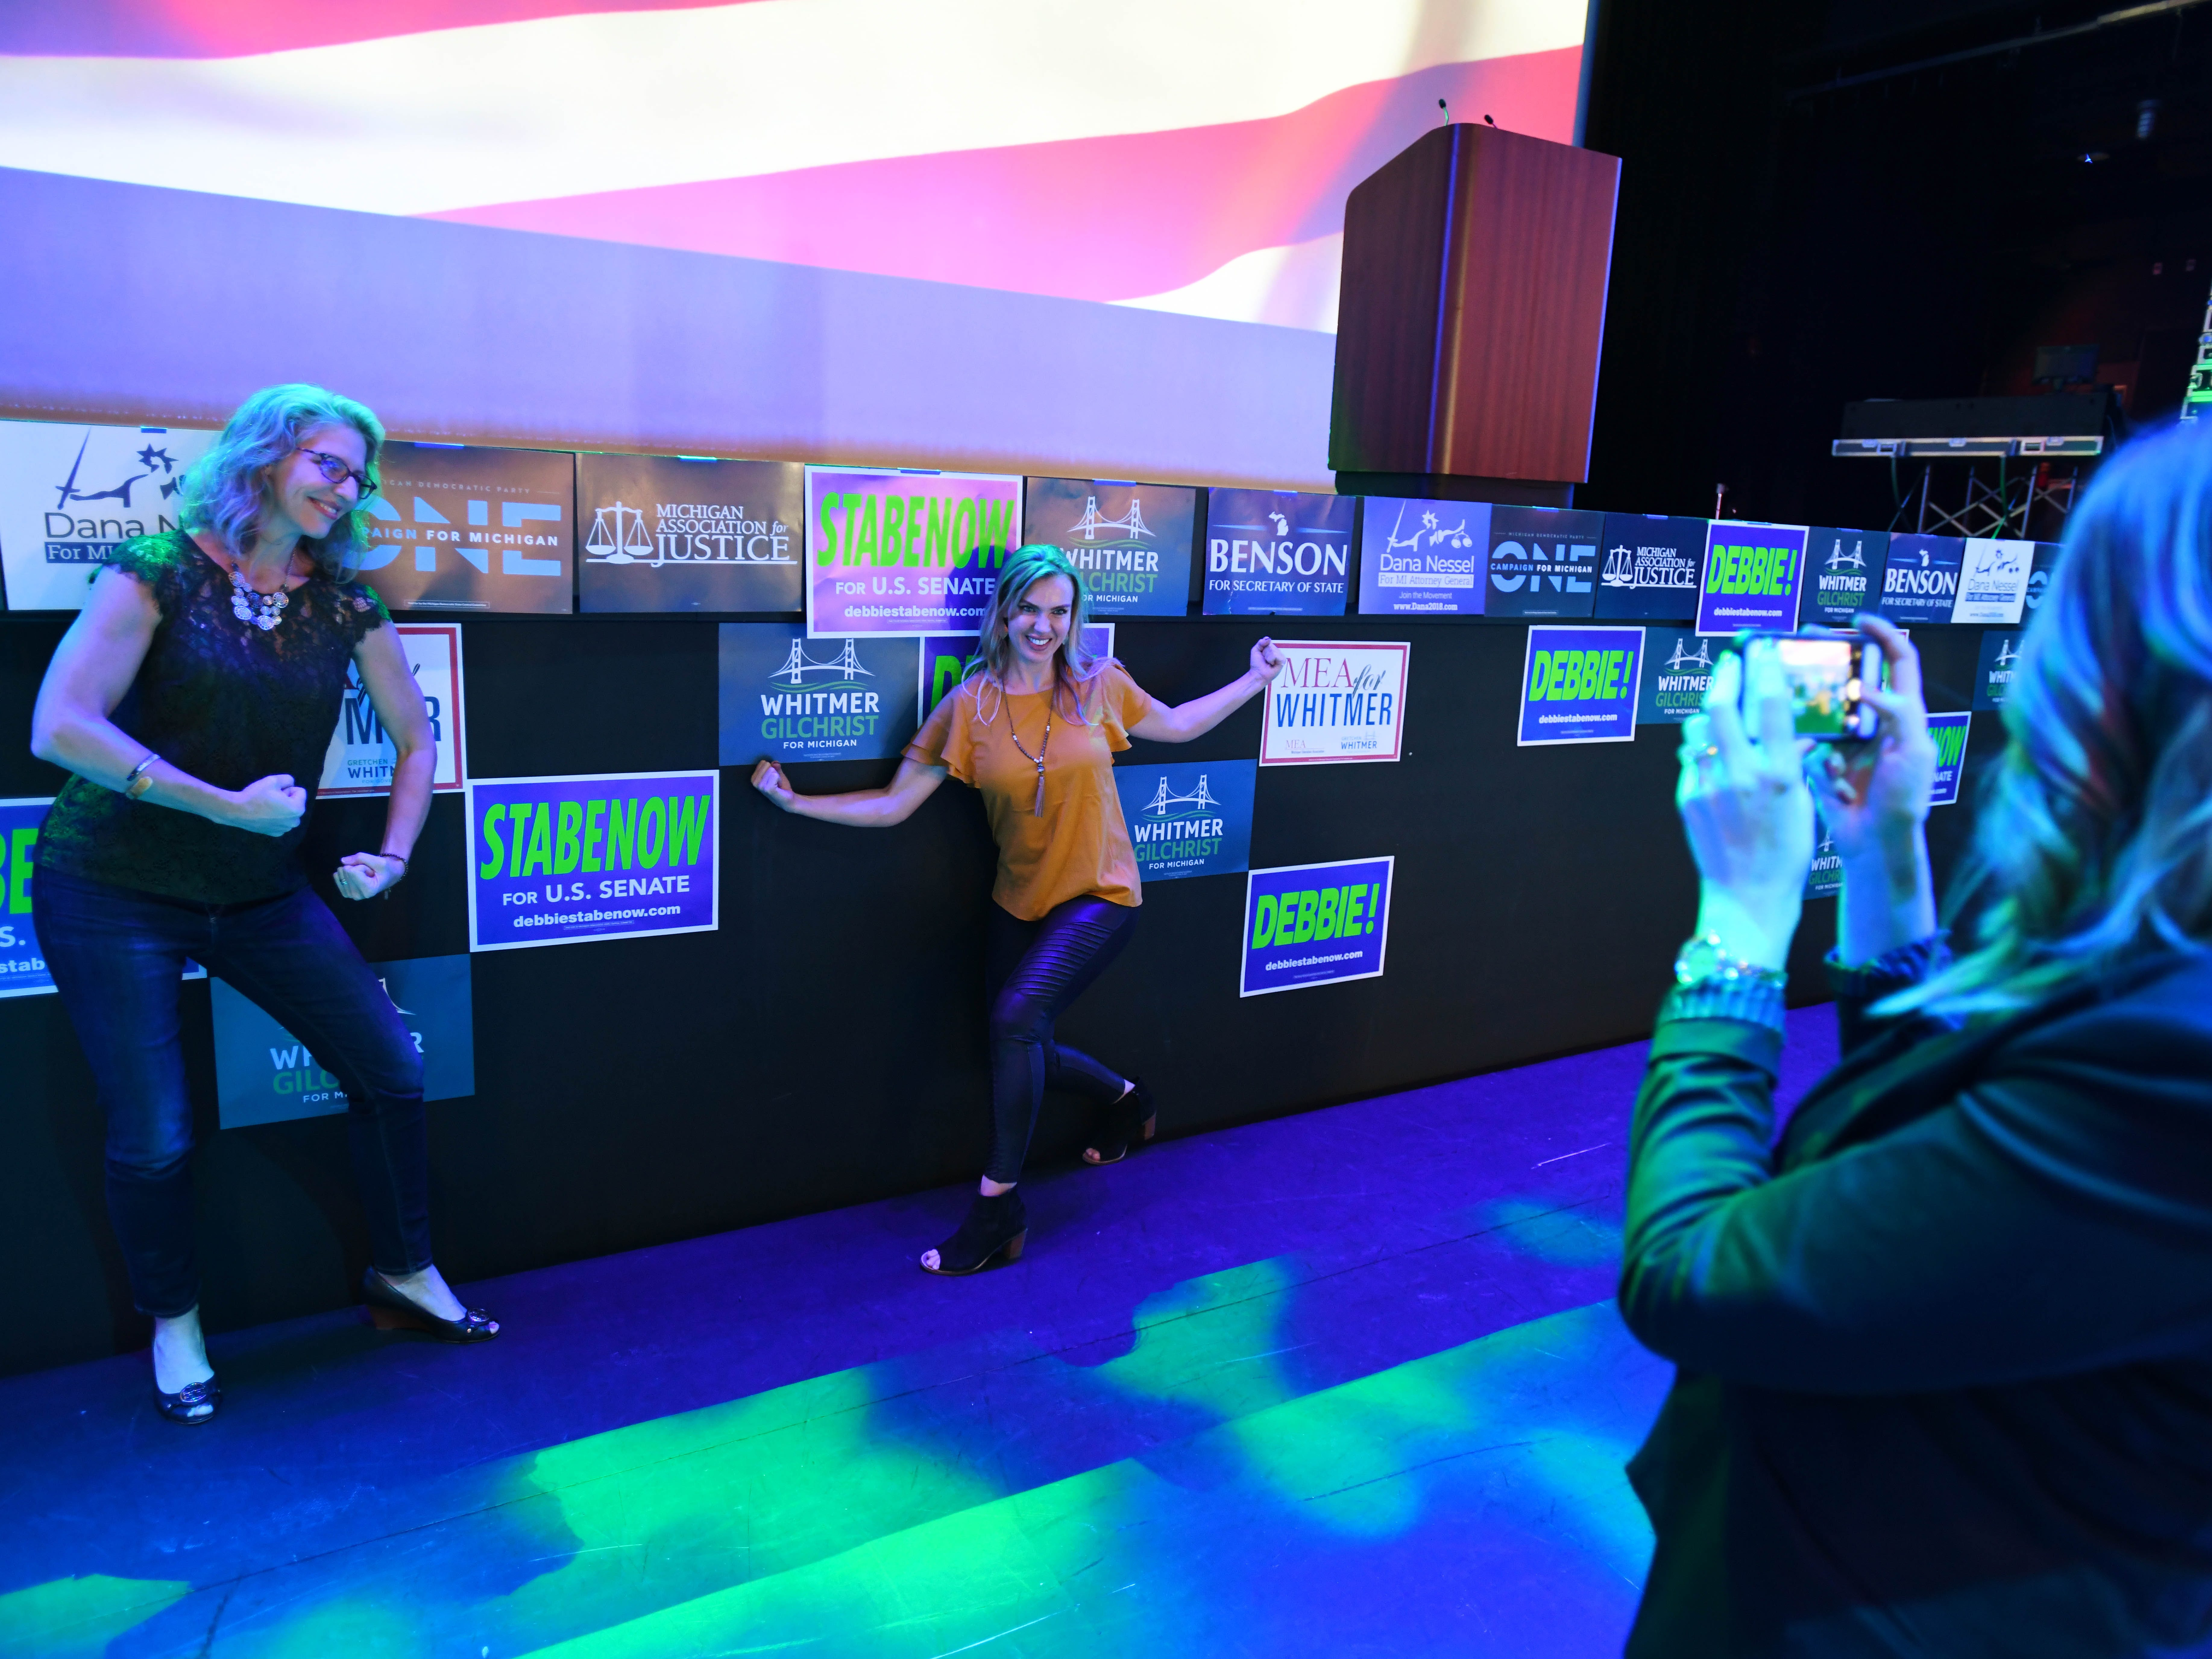 Amy Jonker and Andrea Forsyth have fun posing for a  photo taken by Sara Vroman in front of the stage where the Democrats are hoping Michigan gubernatorial candidate Gretchen Whitmer will announce a victory later Tuesday night.  Democrats gathered at the Sound Board theater in the MotorCity Casino in Detroit.